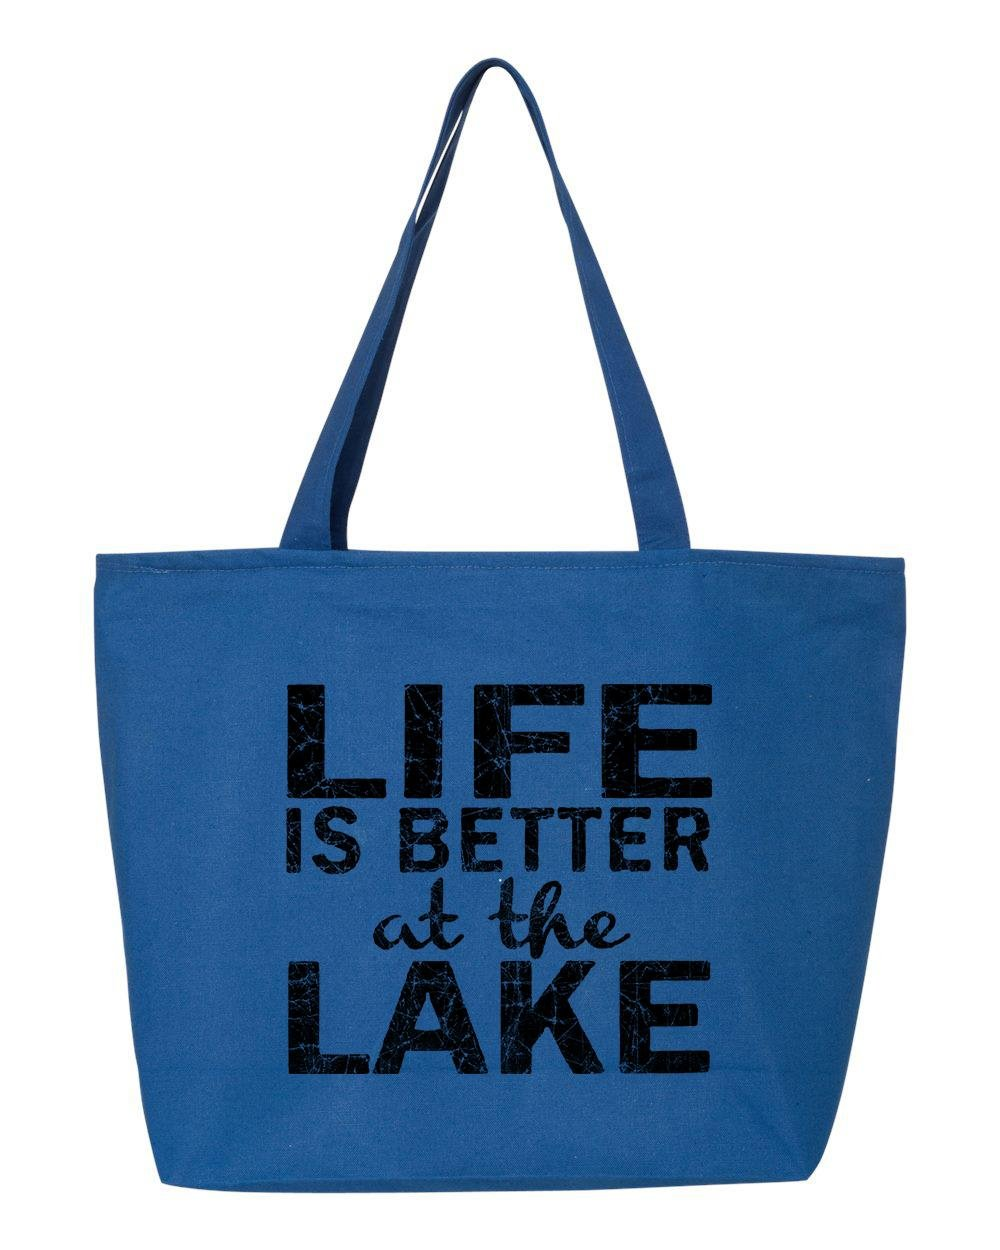 【GINGER掲載商品】 shop4ever shop4ever Life ロイヤル Is Better At The LakeブラックHeavy Canvas B07117CMMJ Tote with Zipper Sayings再利用可能なショッピングバッグ12 oz Zip 25 oz ブルー S4E_1215_LifeLakeBlk_TB_Q611_R Blue_1 B07117CMMJ ロイヤル, ナイススタイル:7ab24ad6 --- 4x4.lt